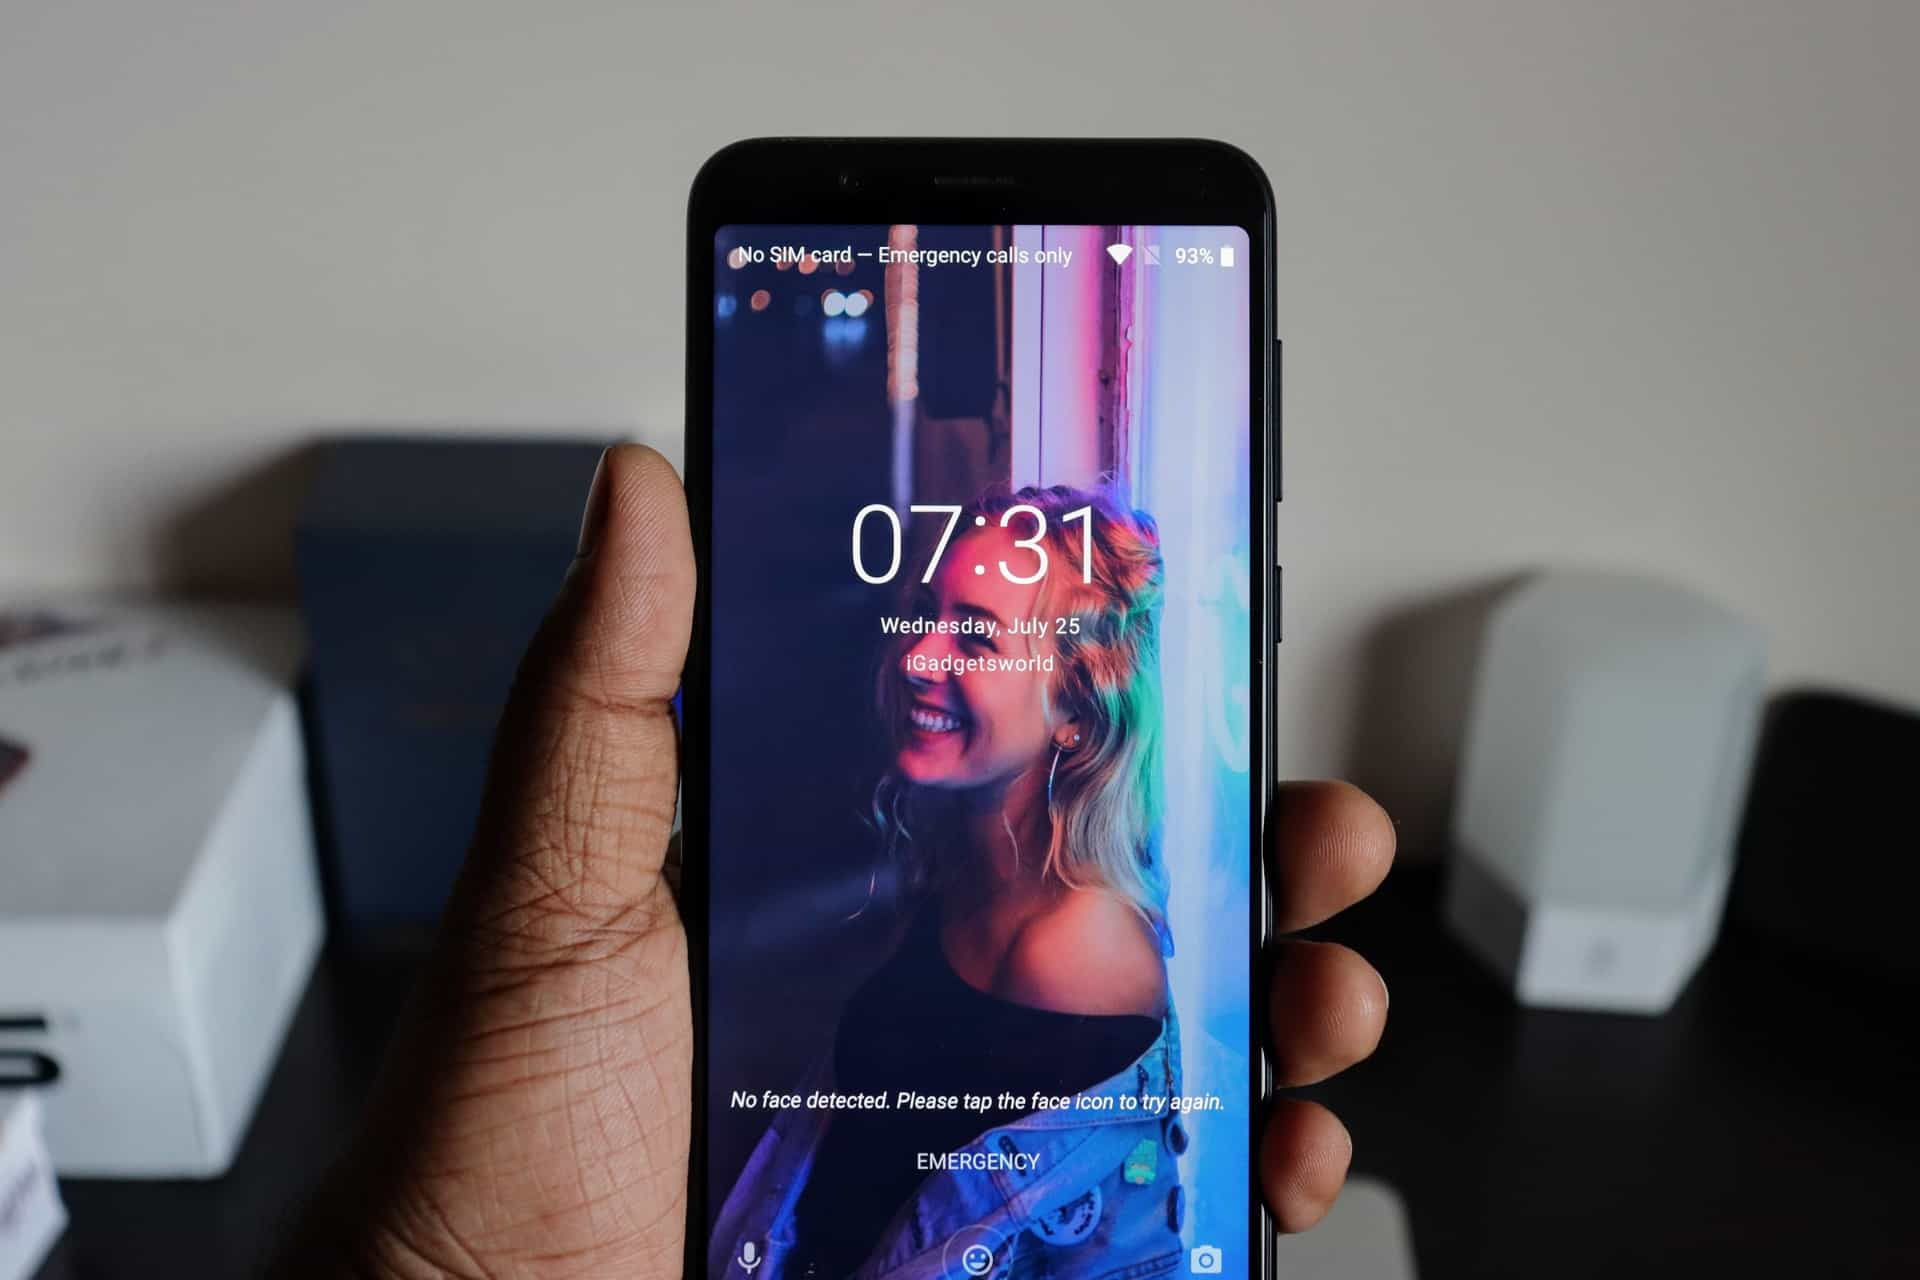 Zenfone Max Pro M1 6GB Hands-on & First Impressions - The Wait is Over! 😎 - 7